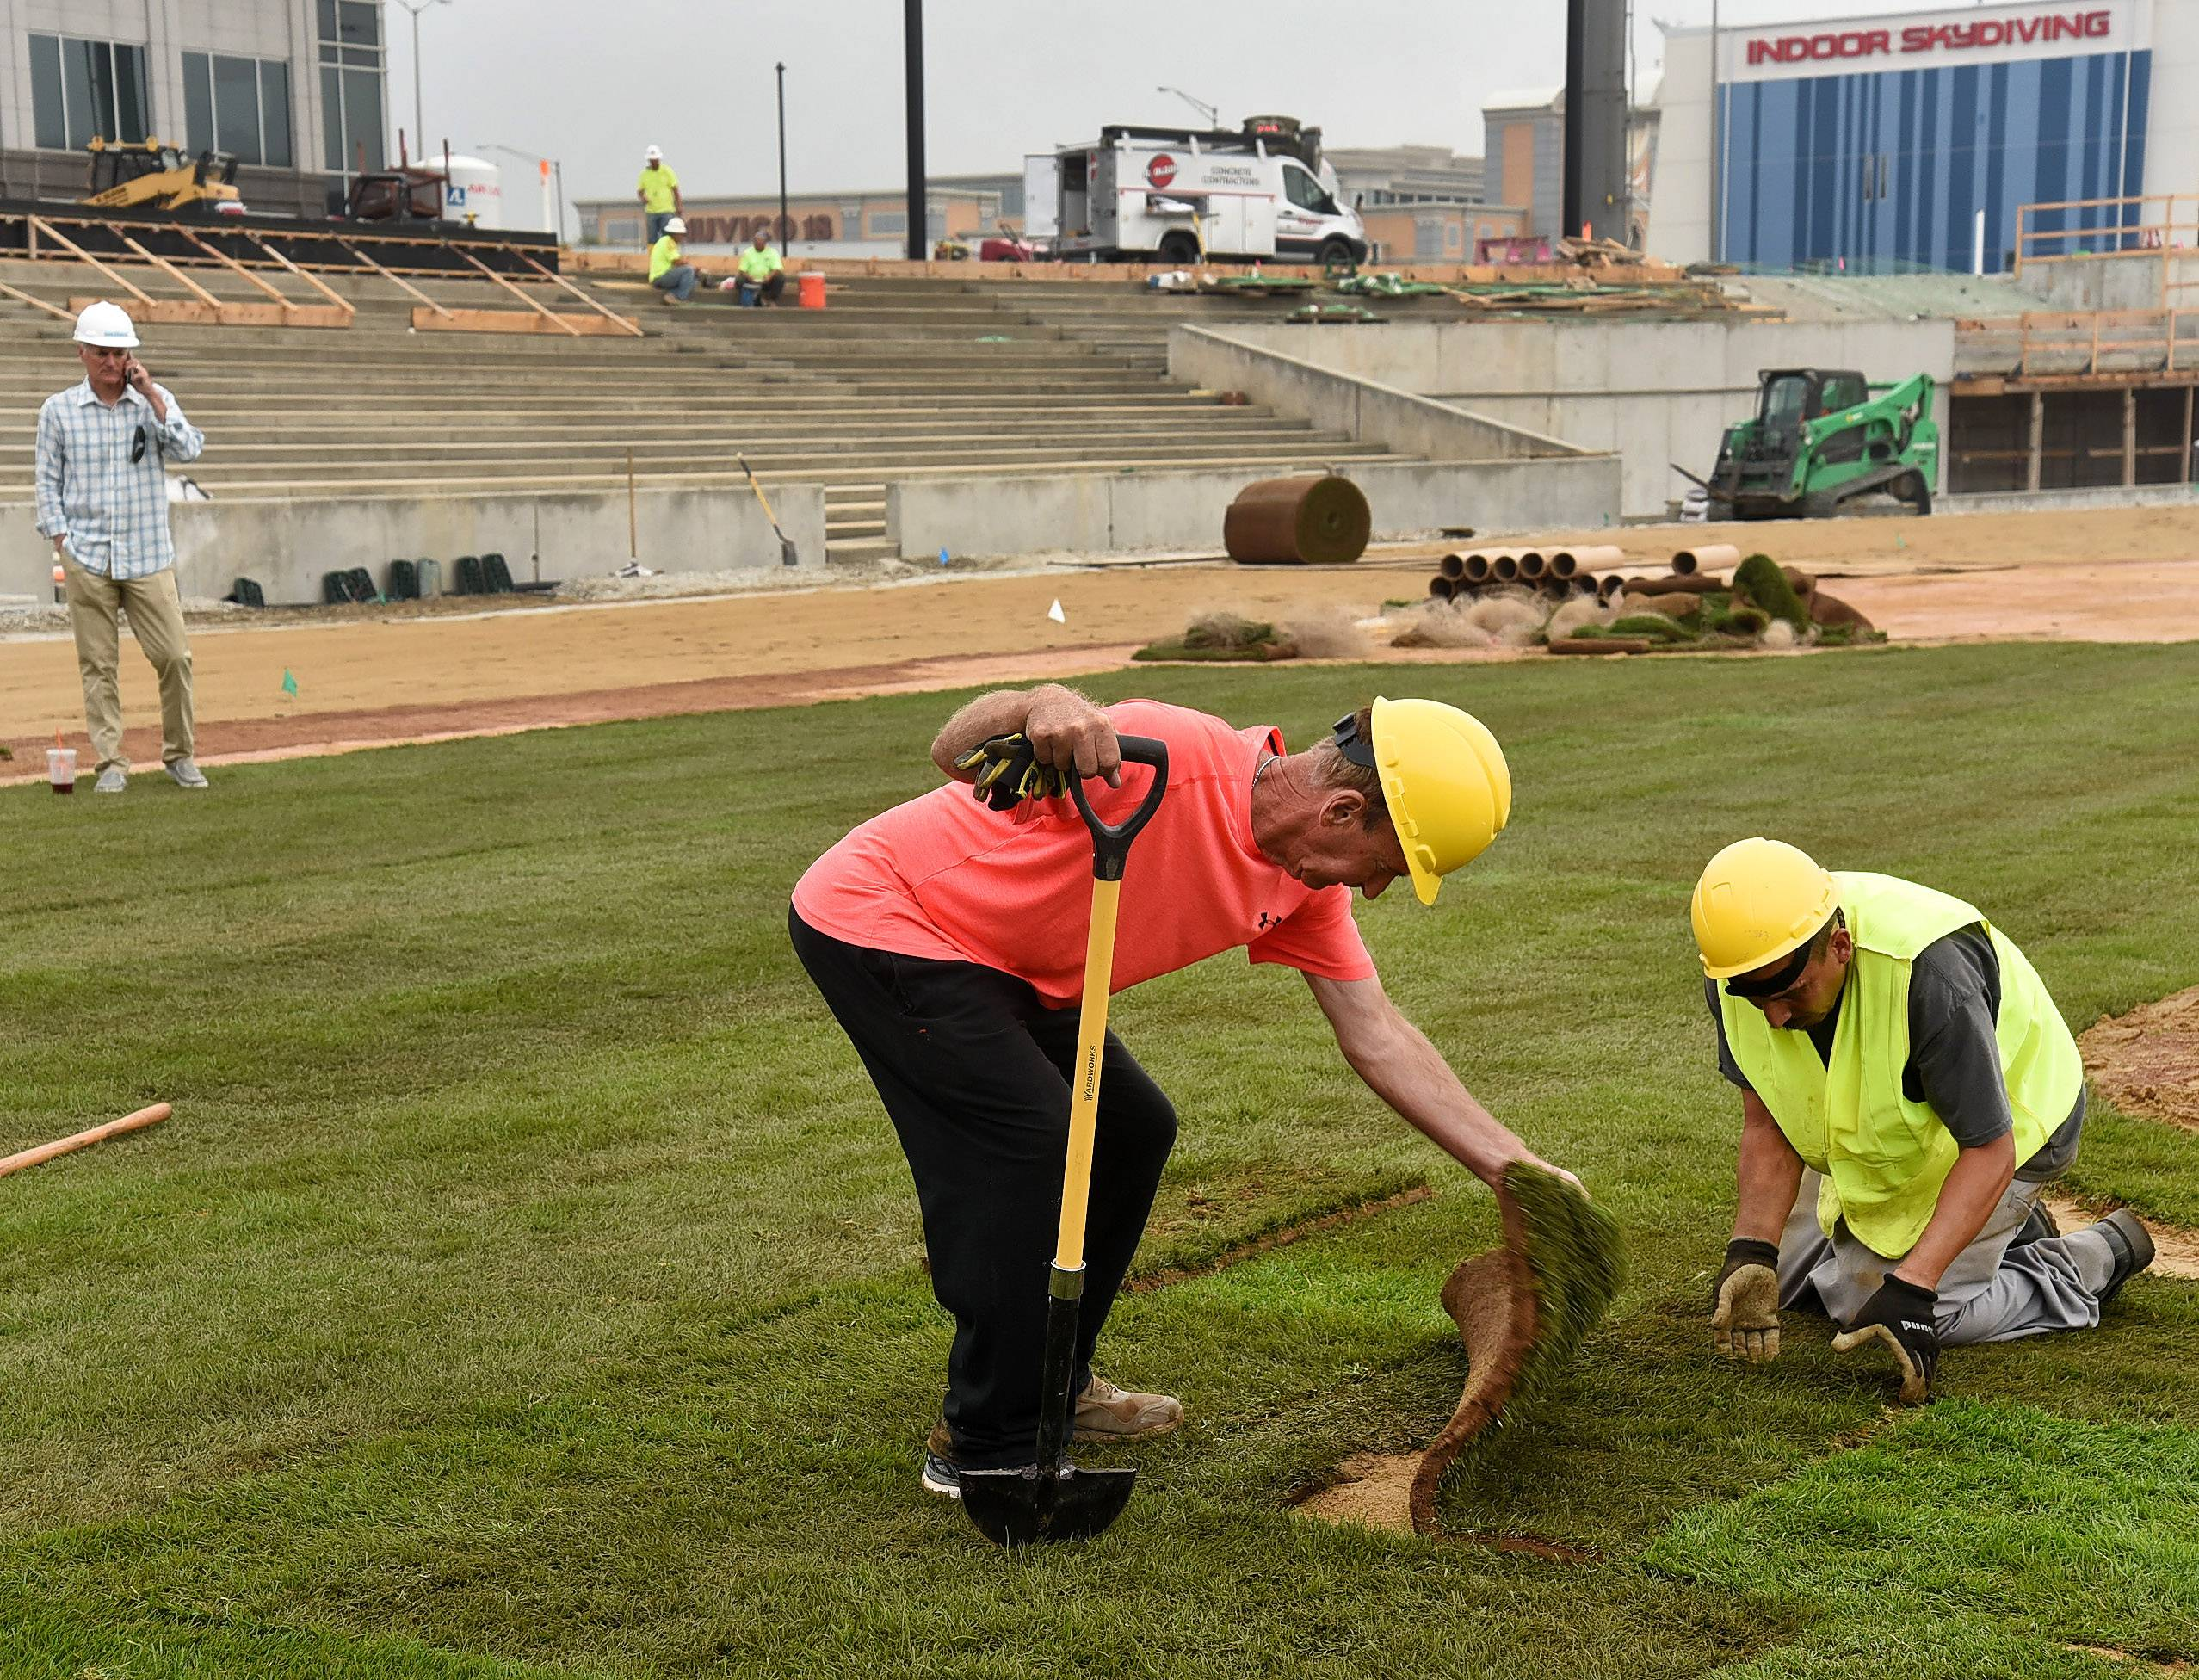 'Sodfather' lays down grass at new Rosemont baseball stadium